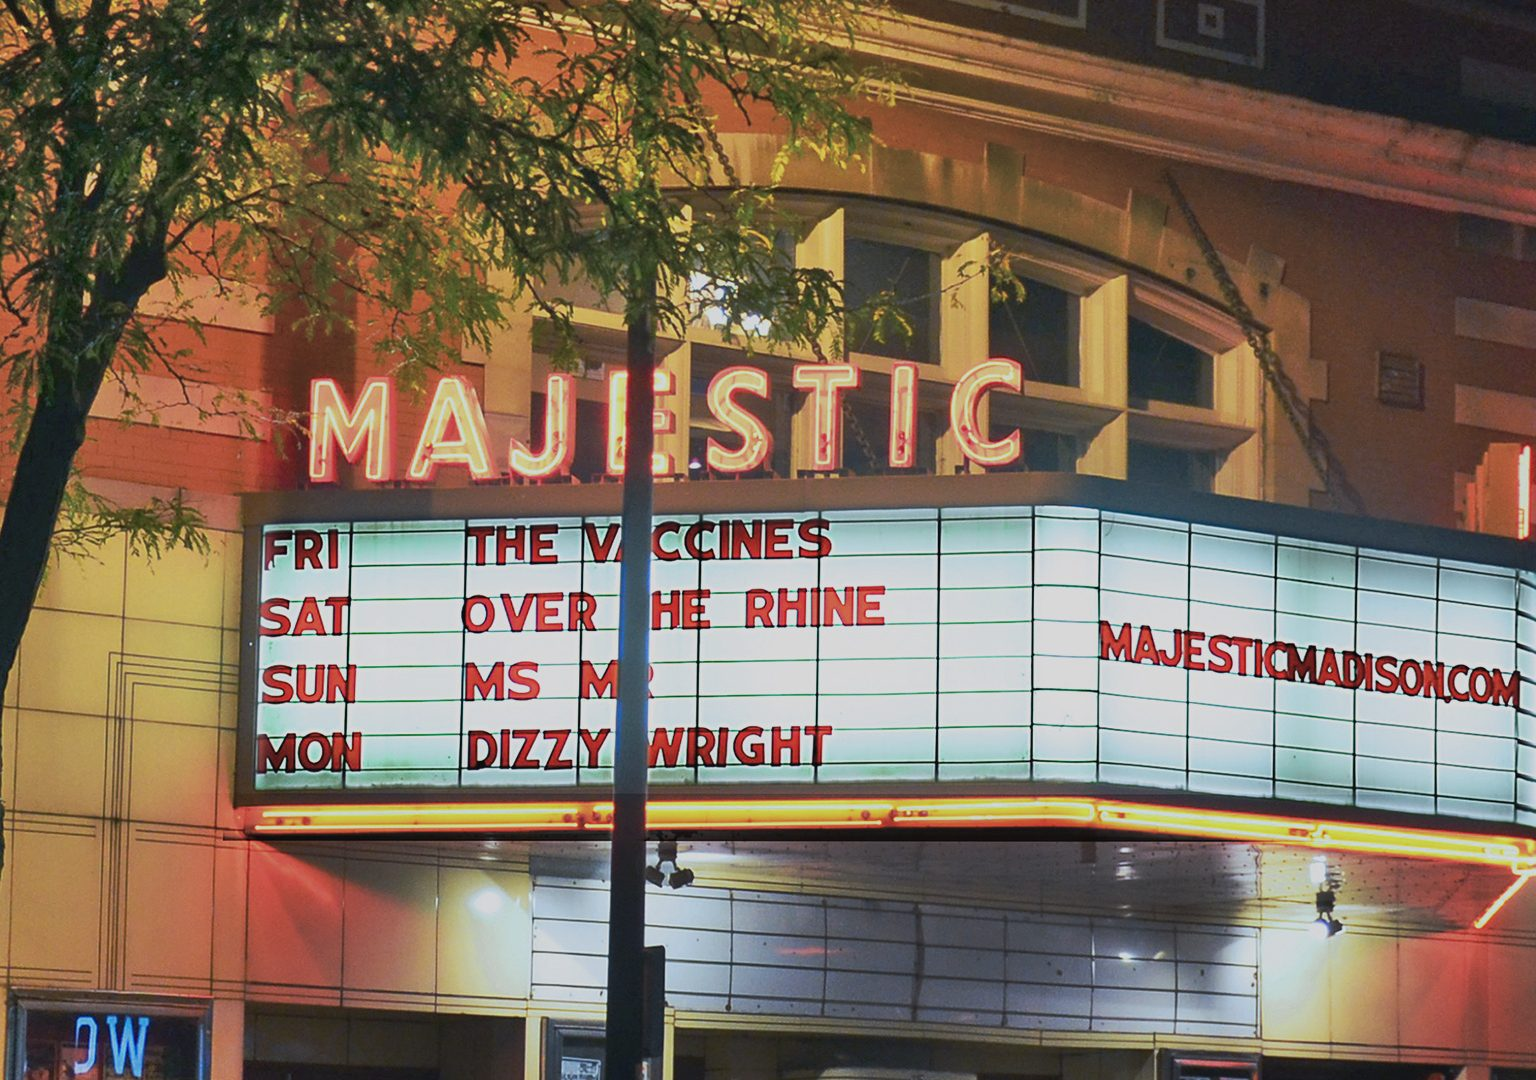 View of illuminated Majestic Theater marquee from across a street at night